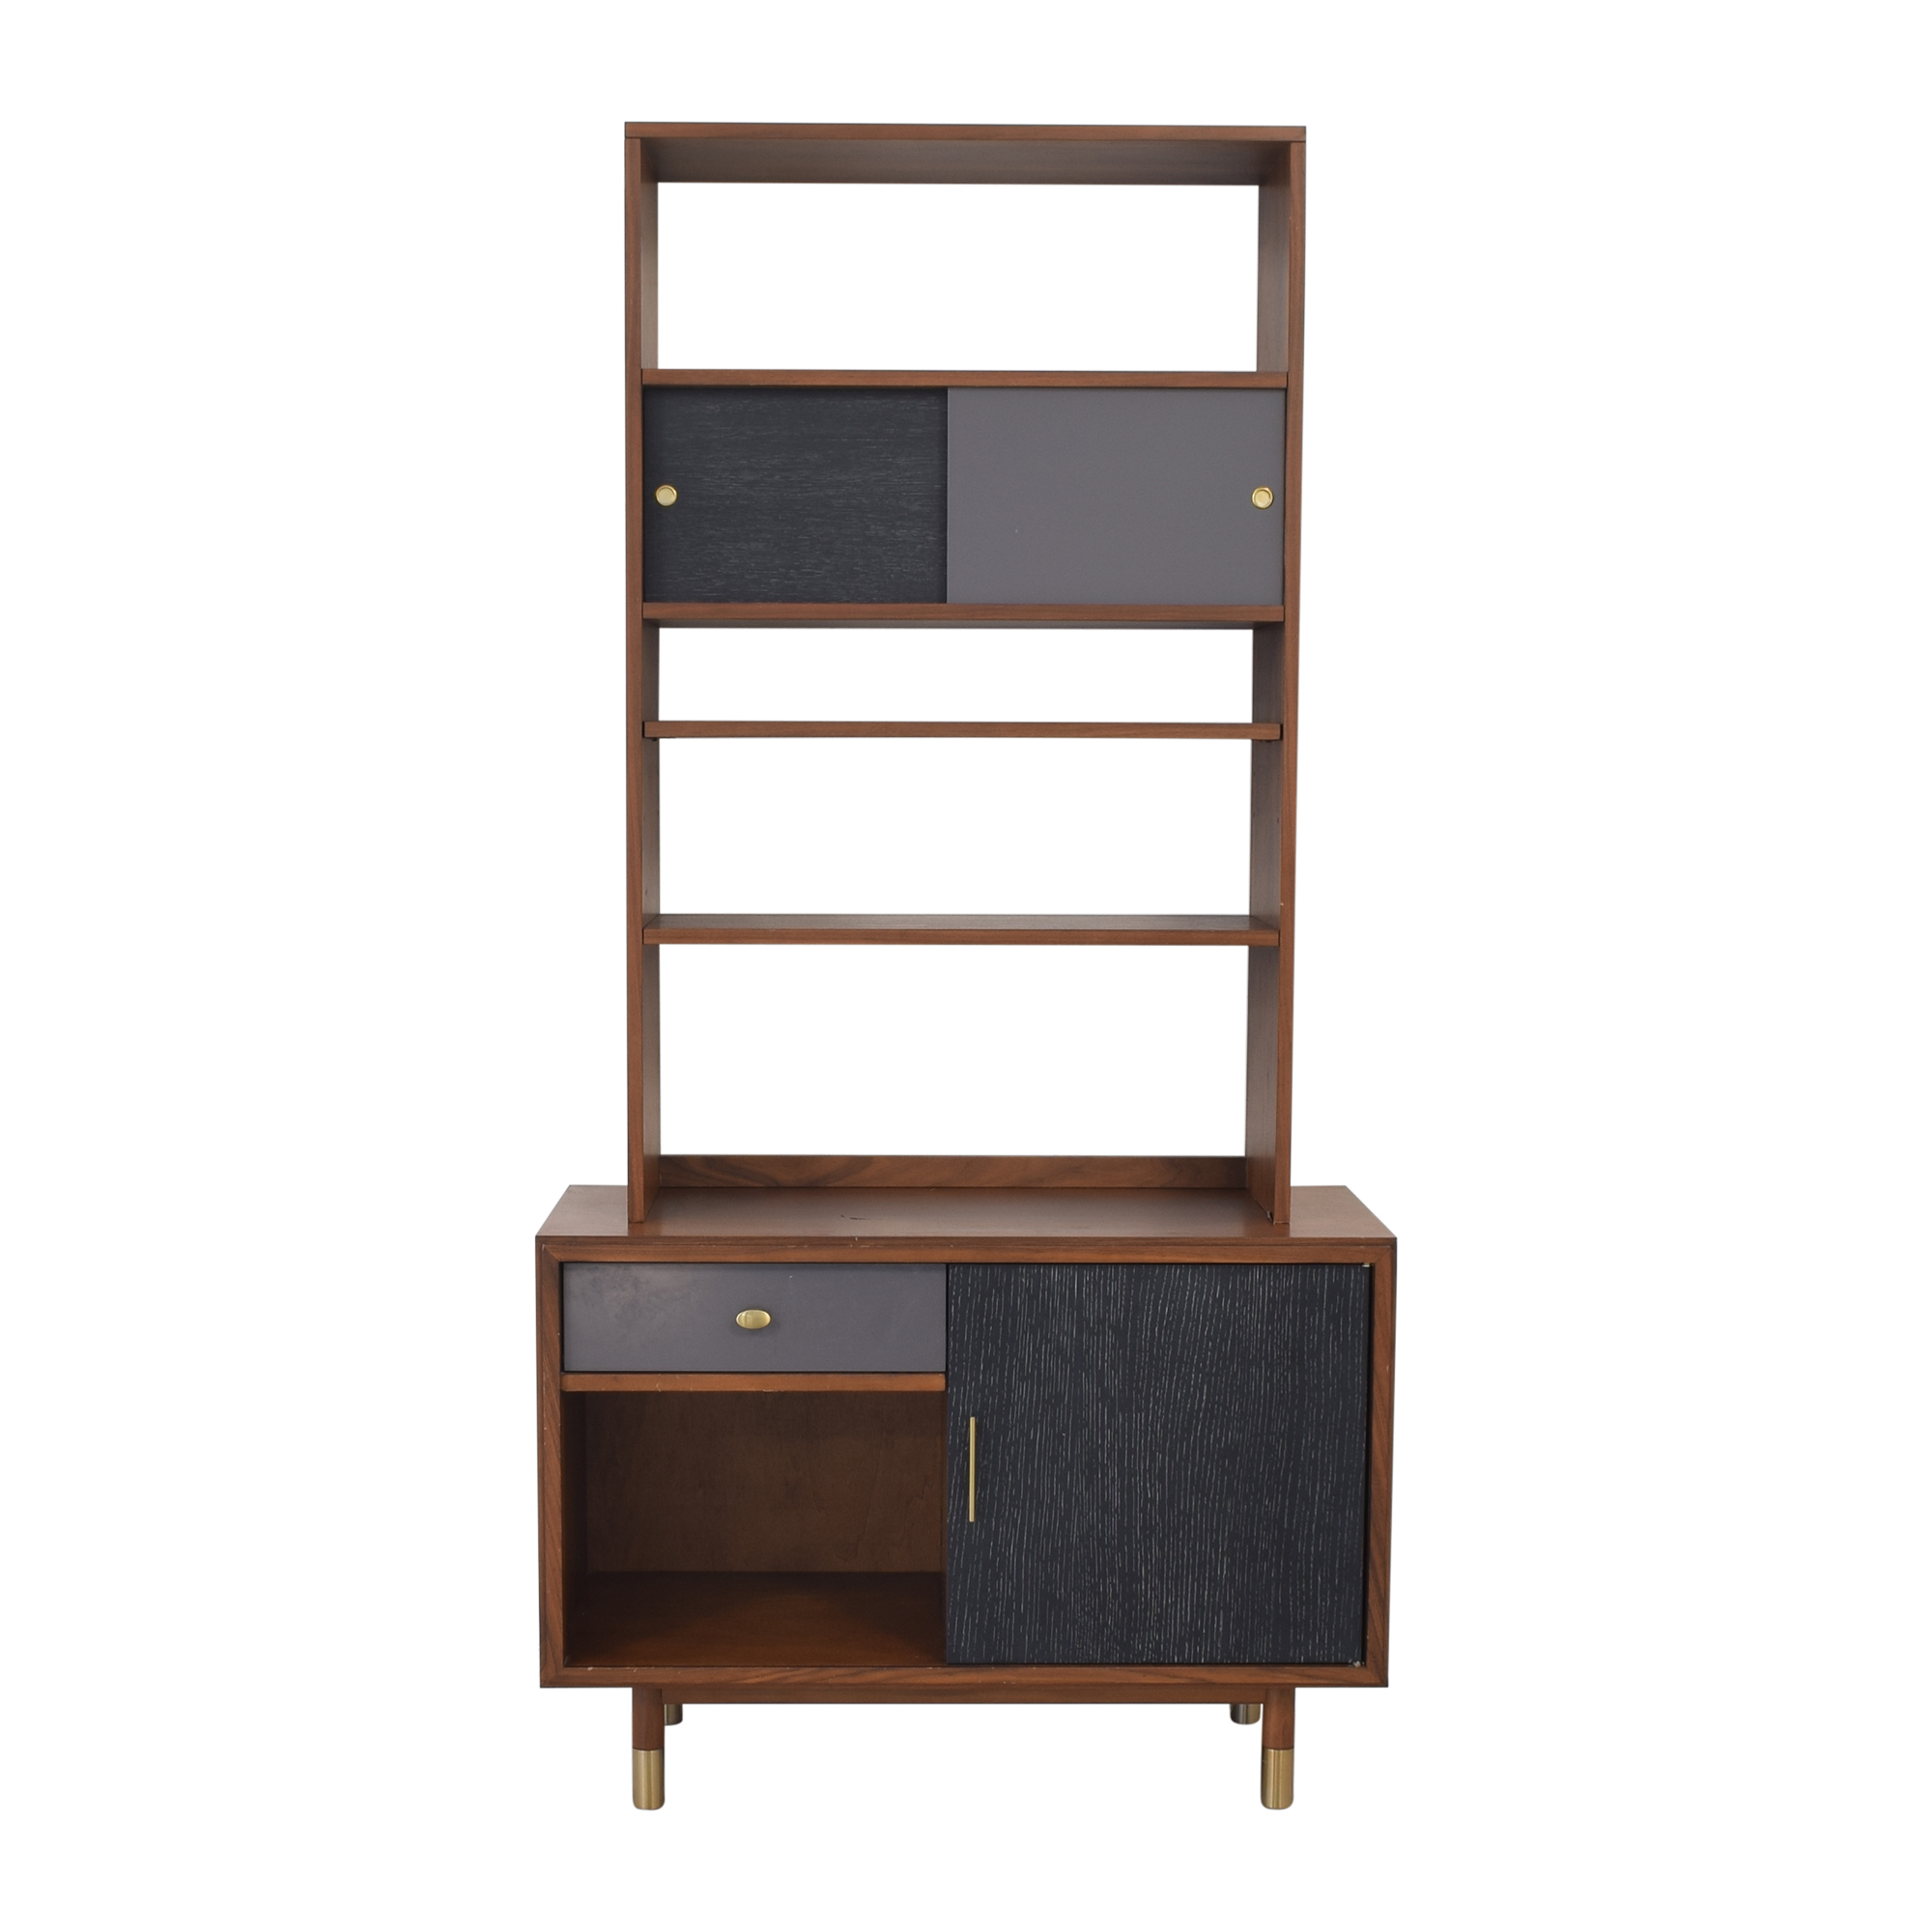 DwellStudios for Magnussen Pace Etagere DwellStudio